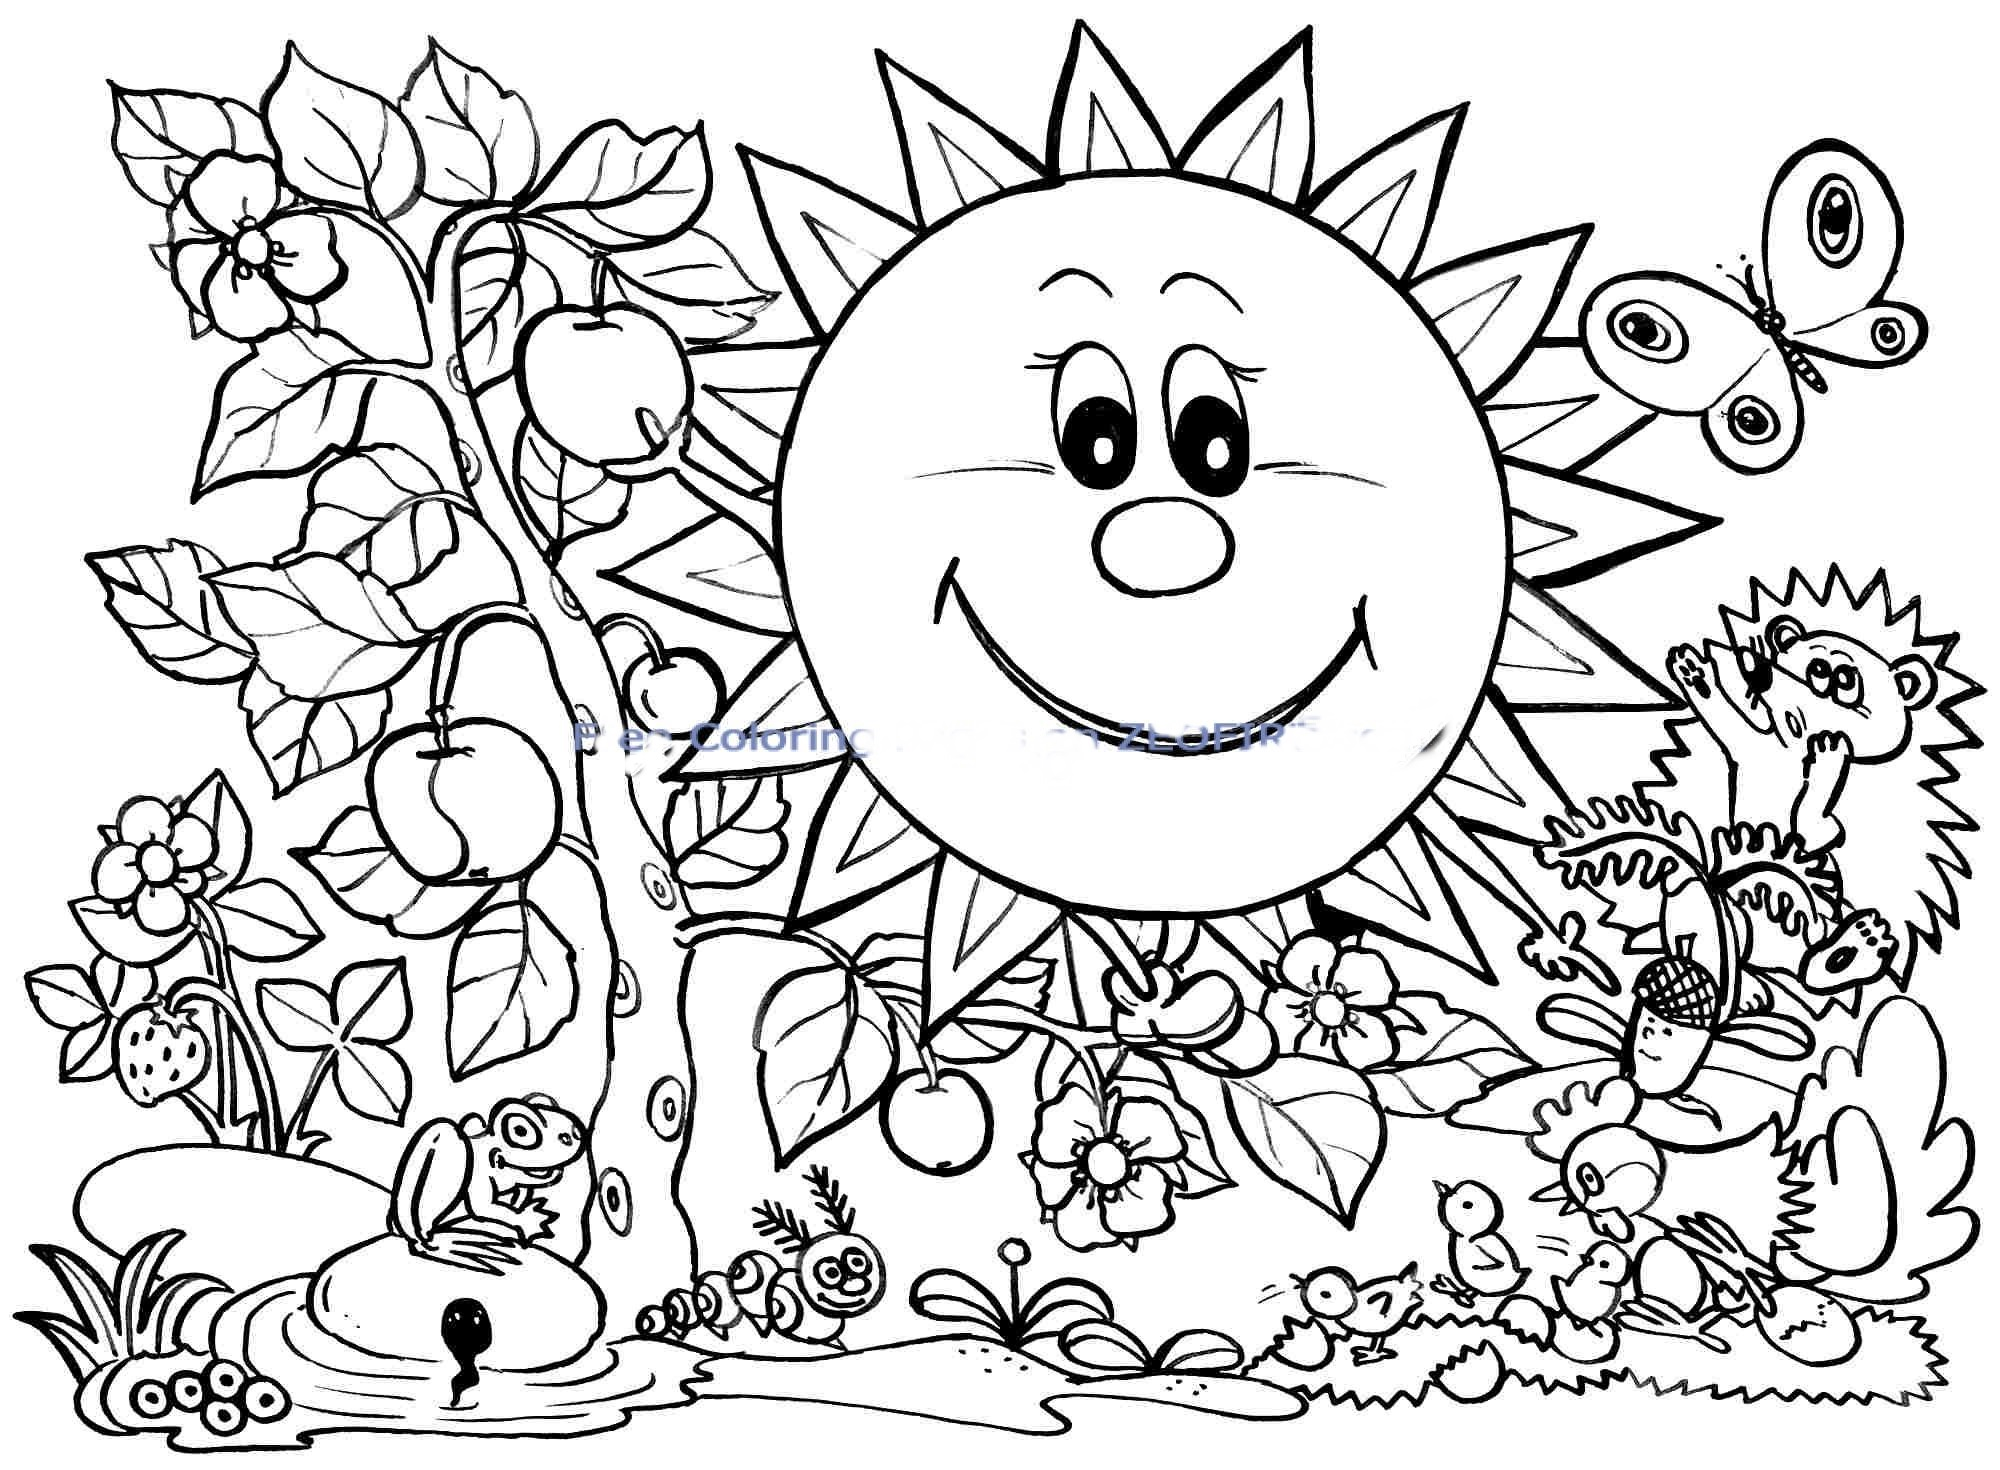 Coloring Pages And Activities Printable at GetDrawings.com | Free ...